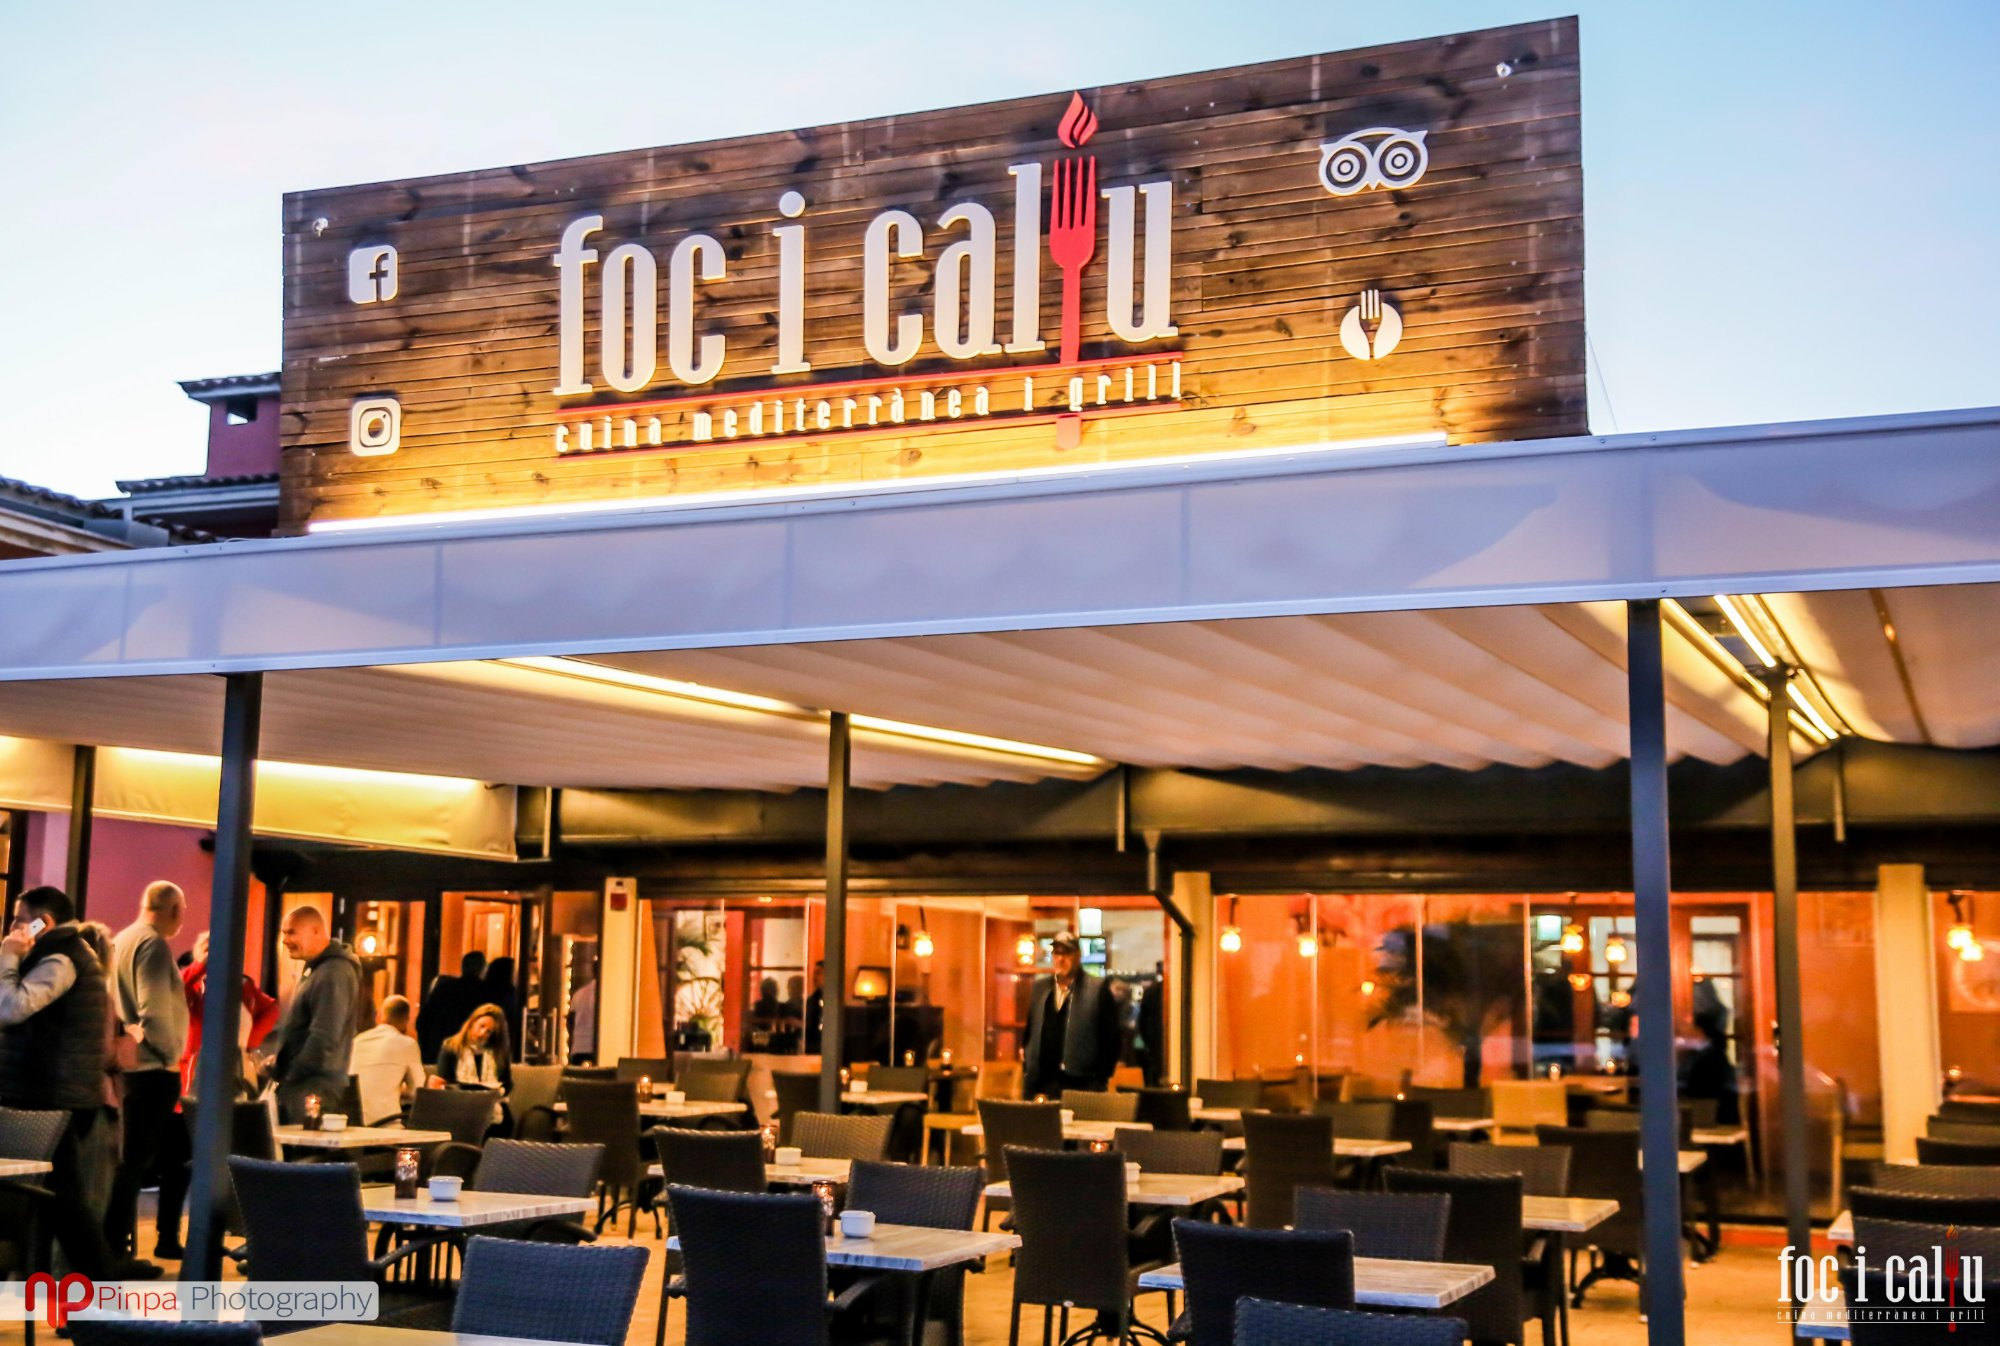 Things To Do in Argentinean, Restaurants in Argentinean